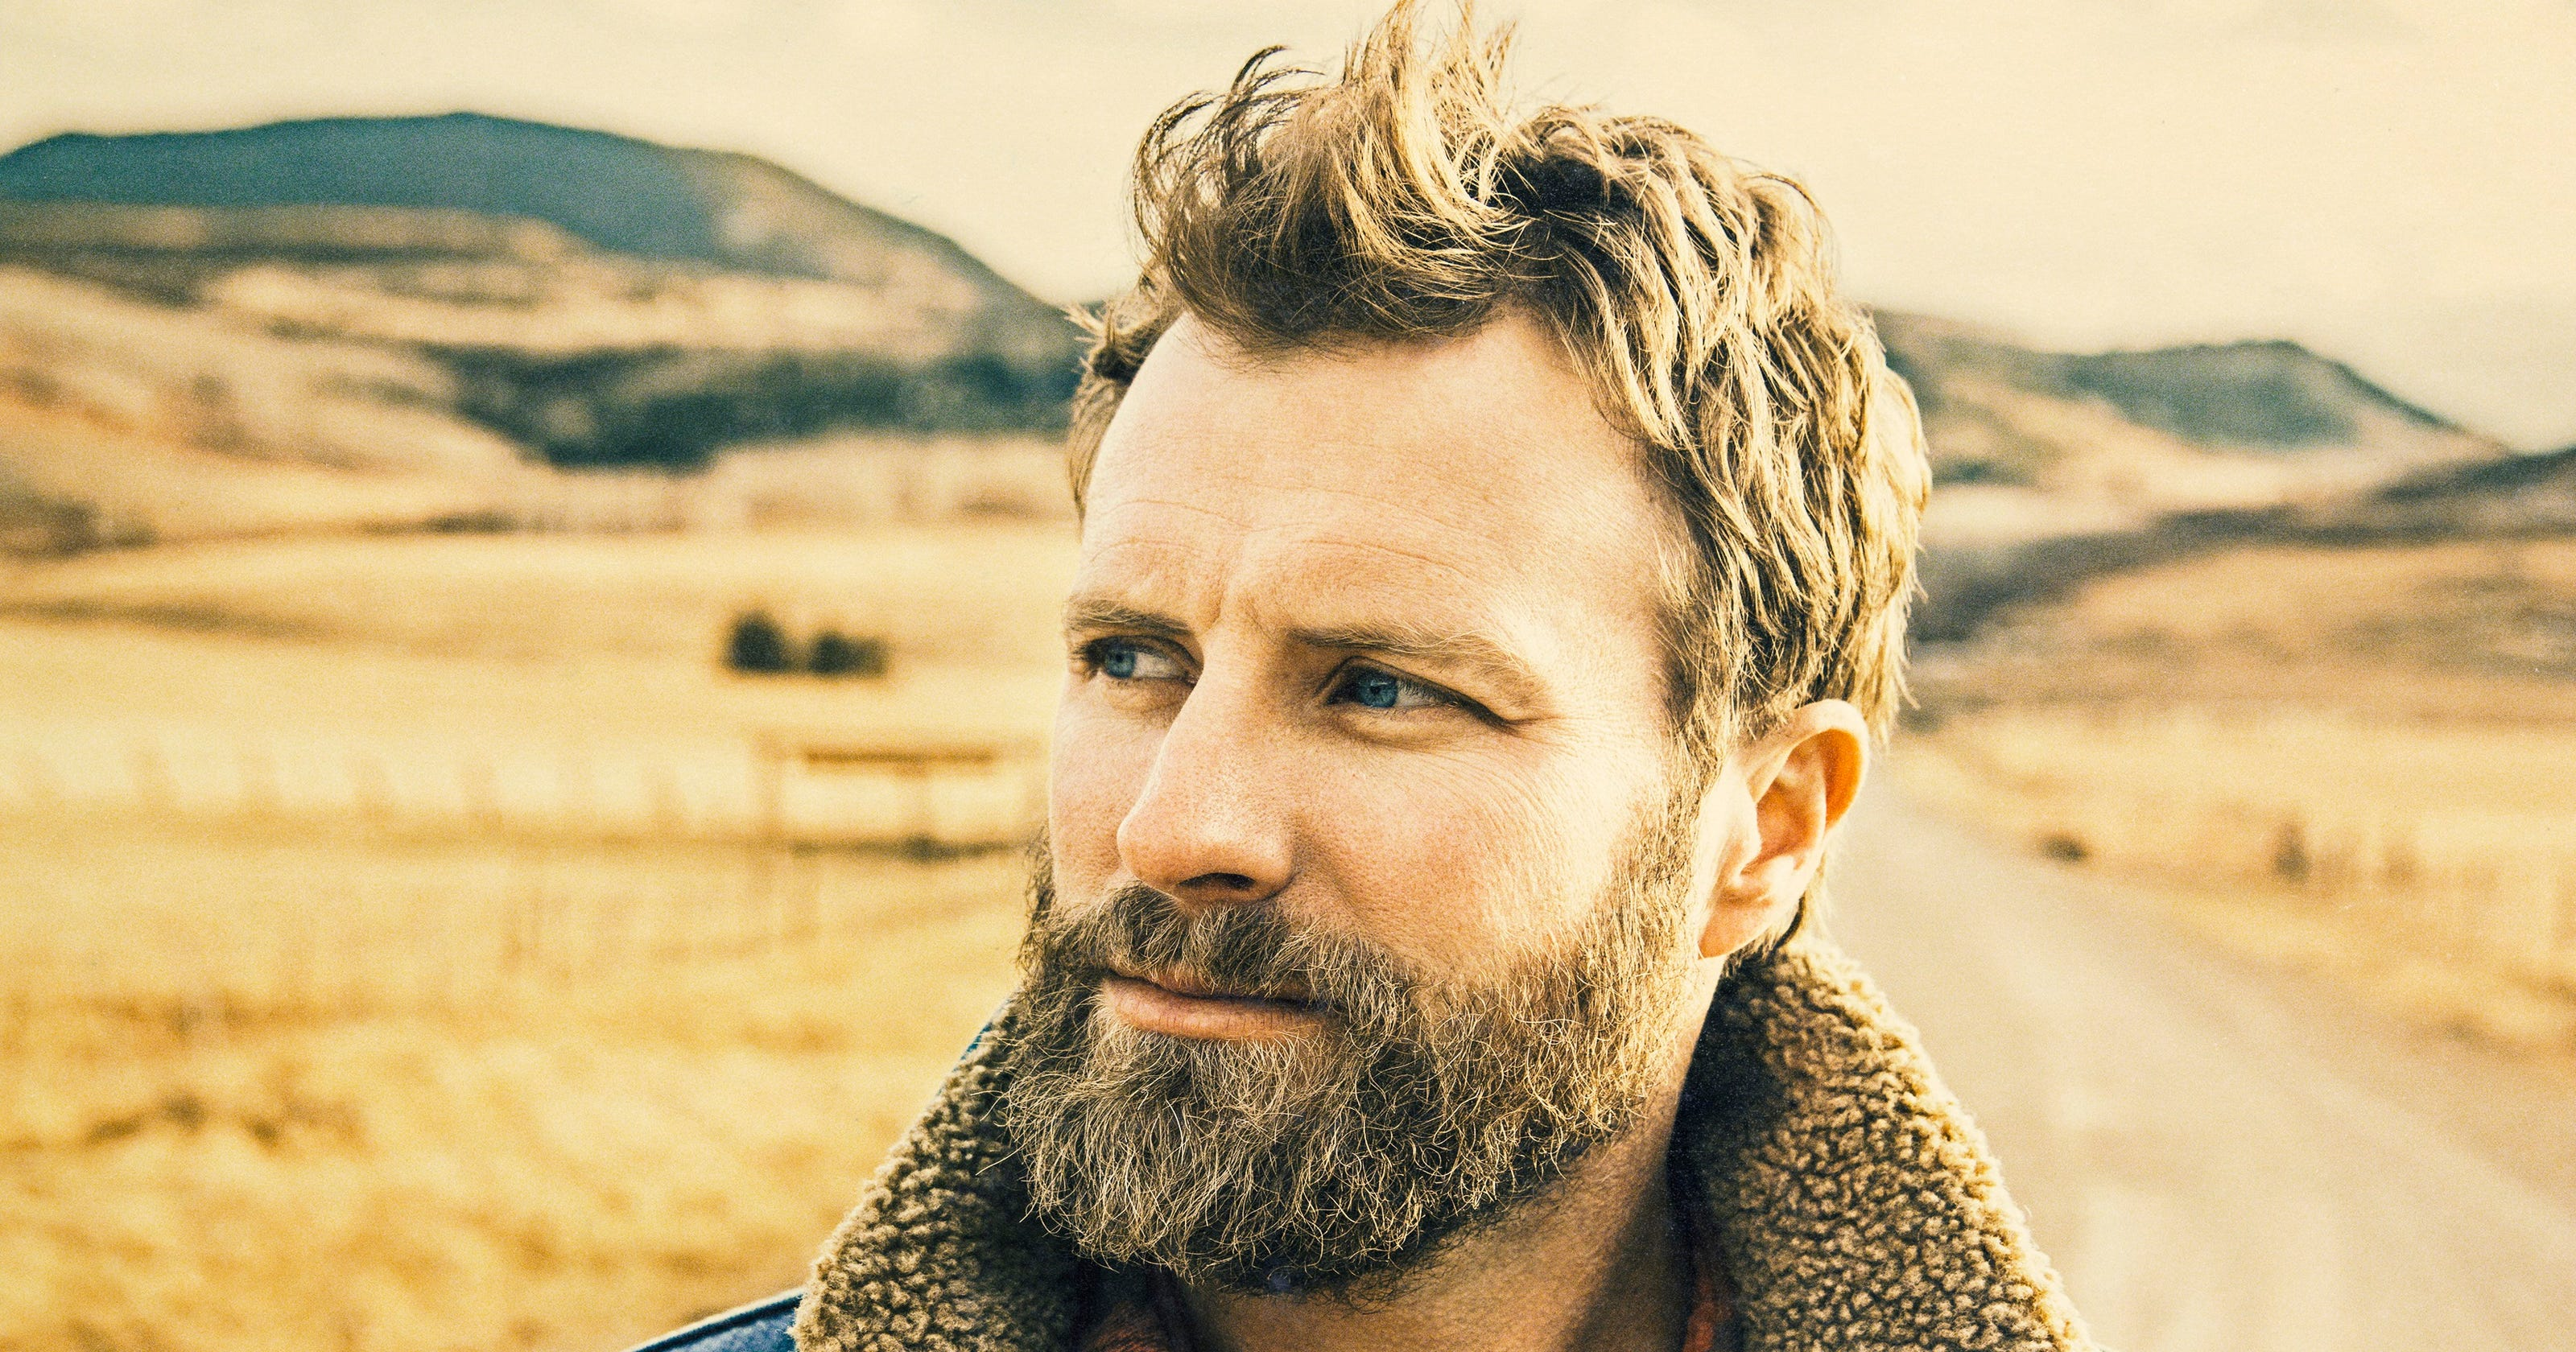 Dierks Bentley to play songs from new album at CMA Fest